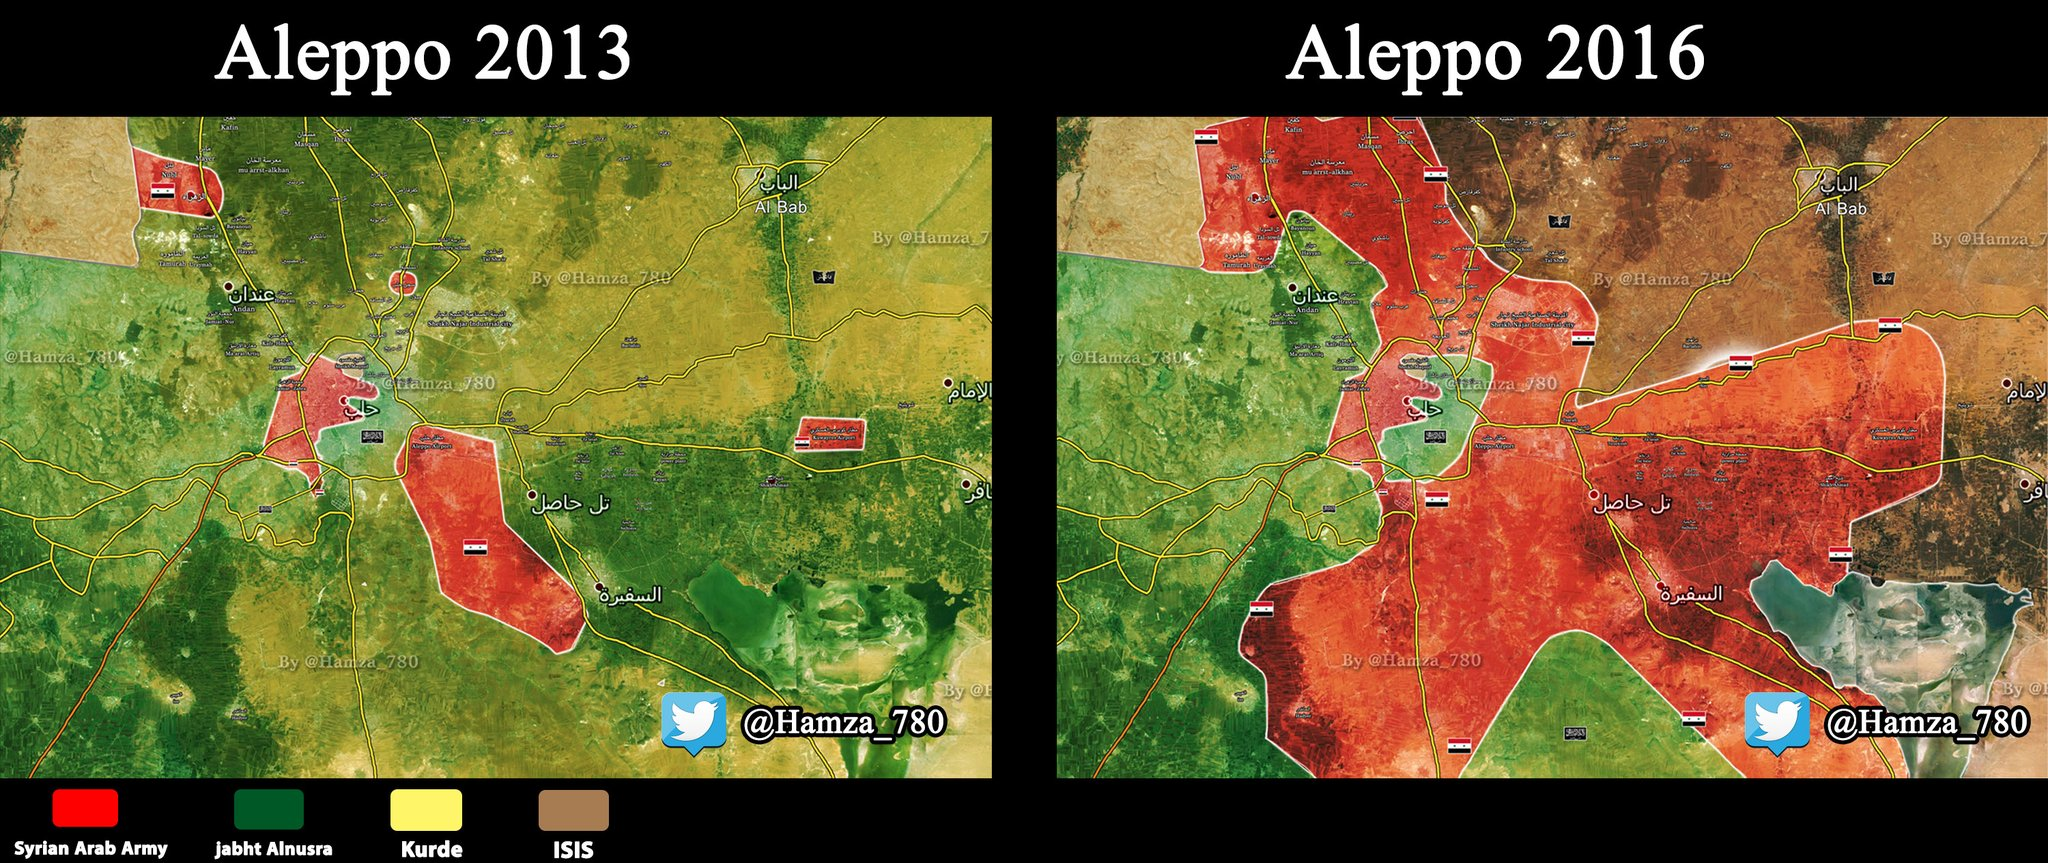 [Image] Military situation in Aleppo – 2013 vs. 2016